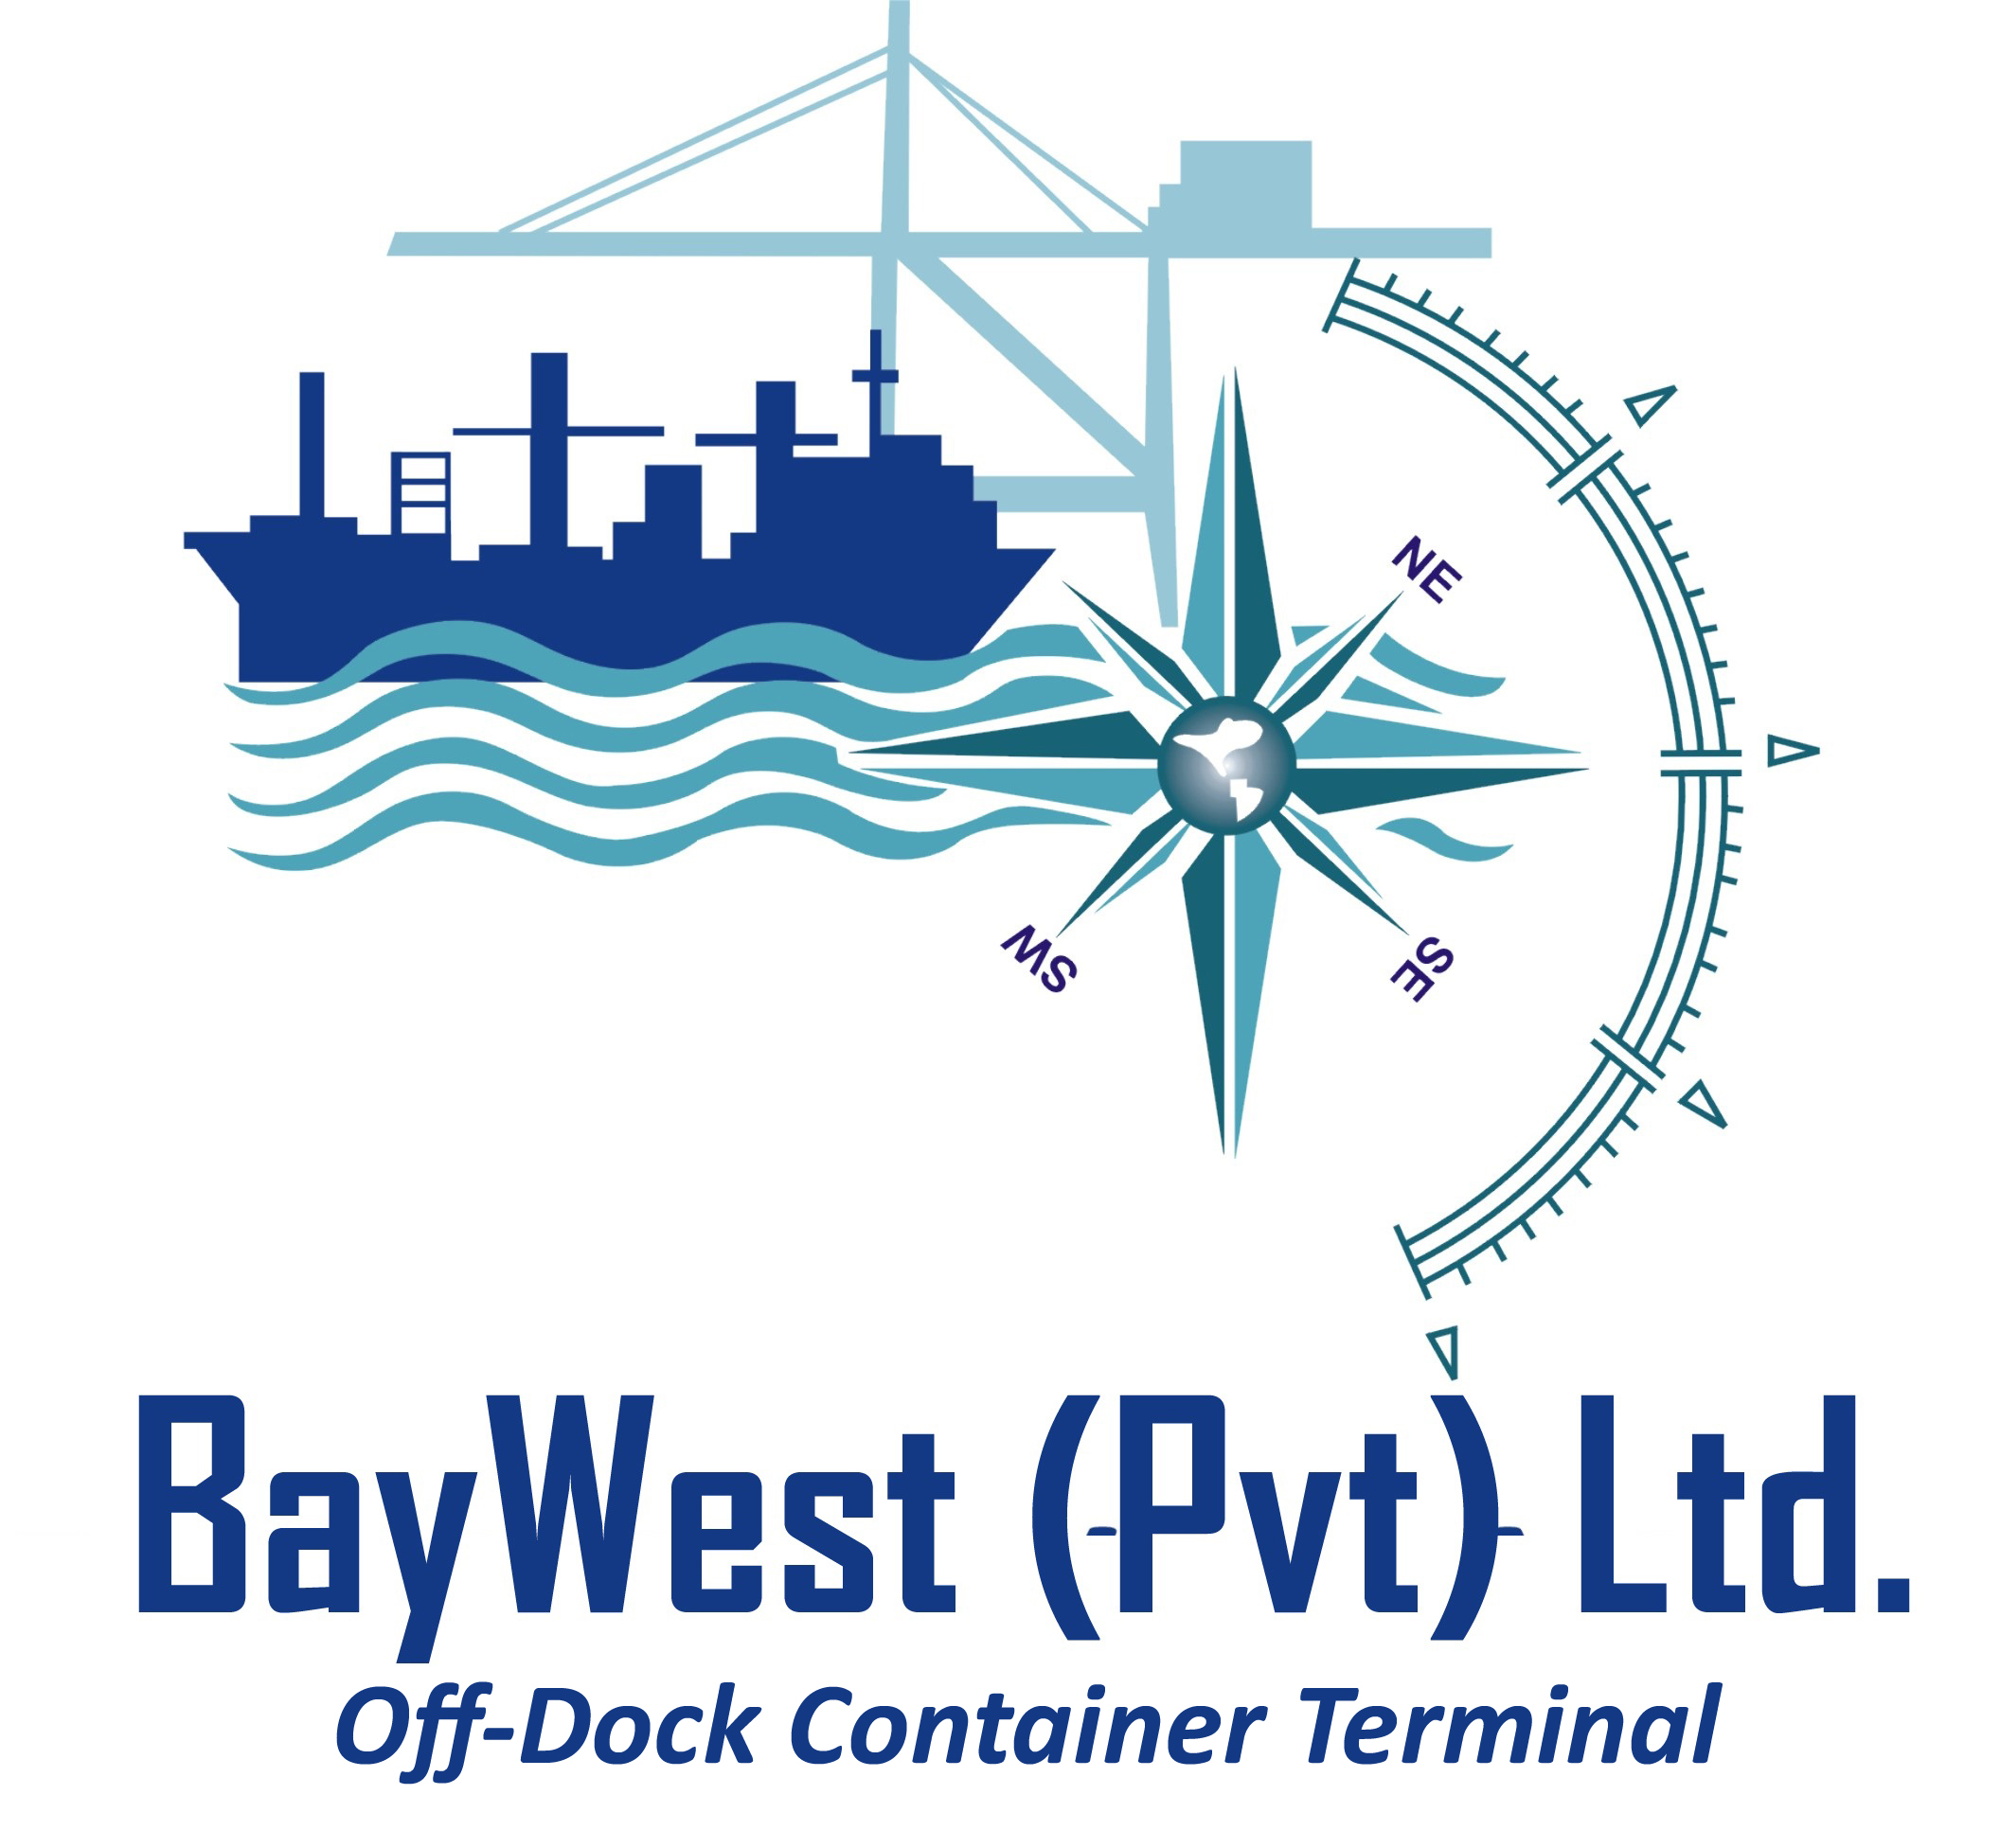 BayWest PVT Ltd